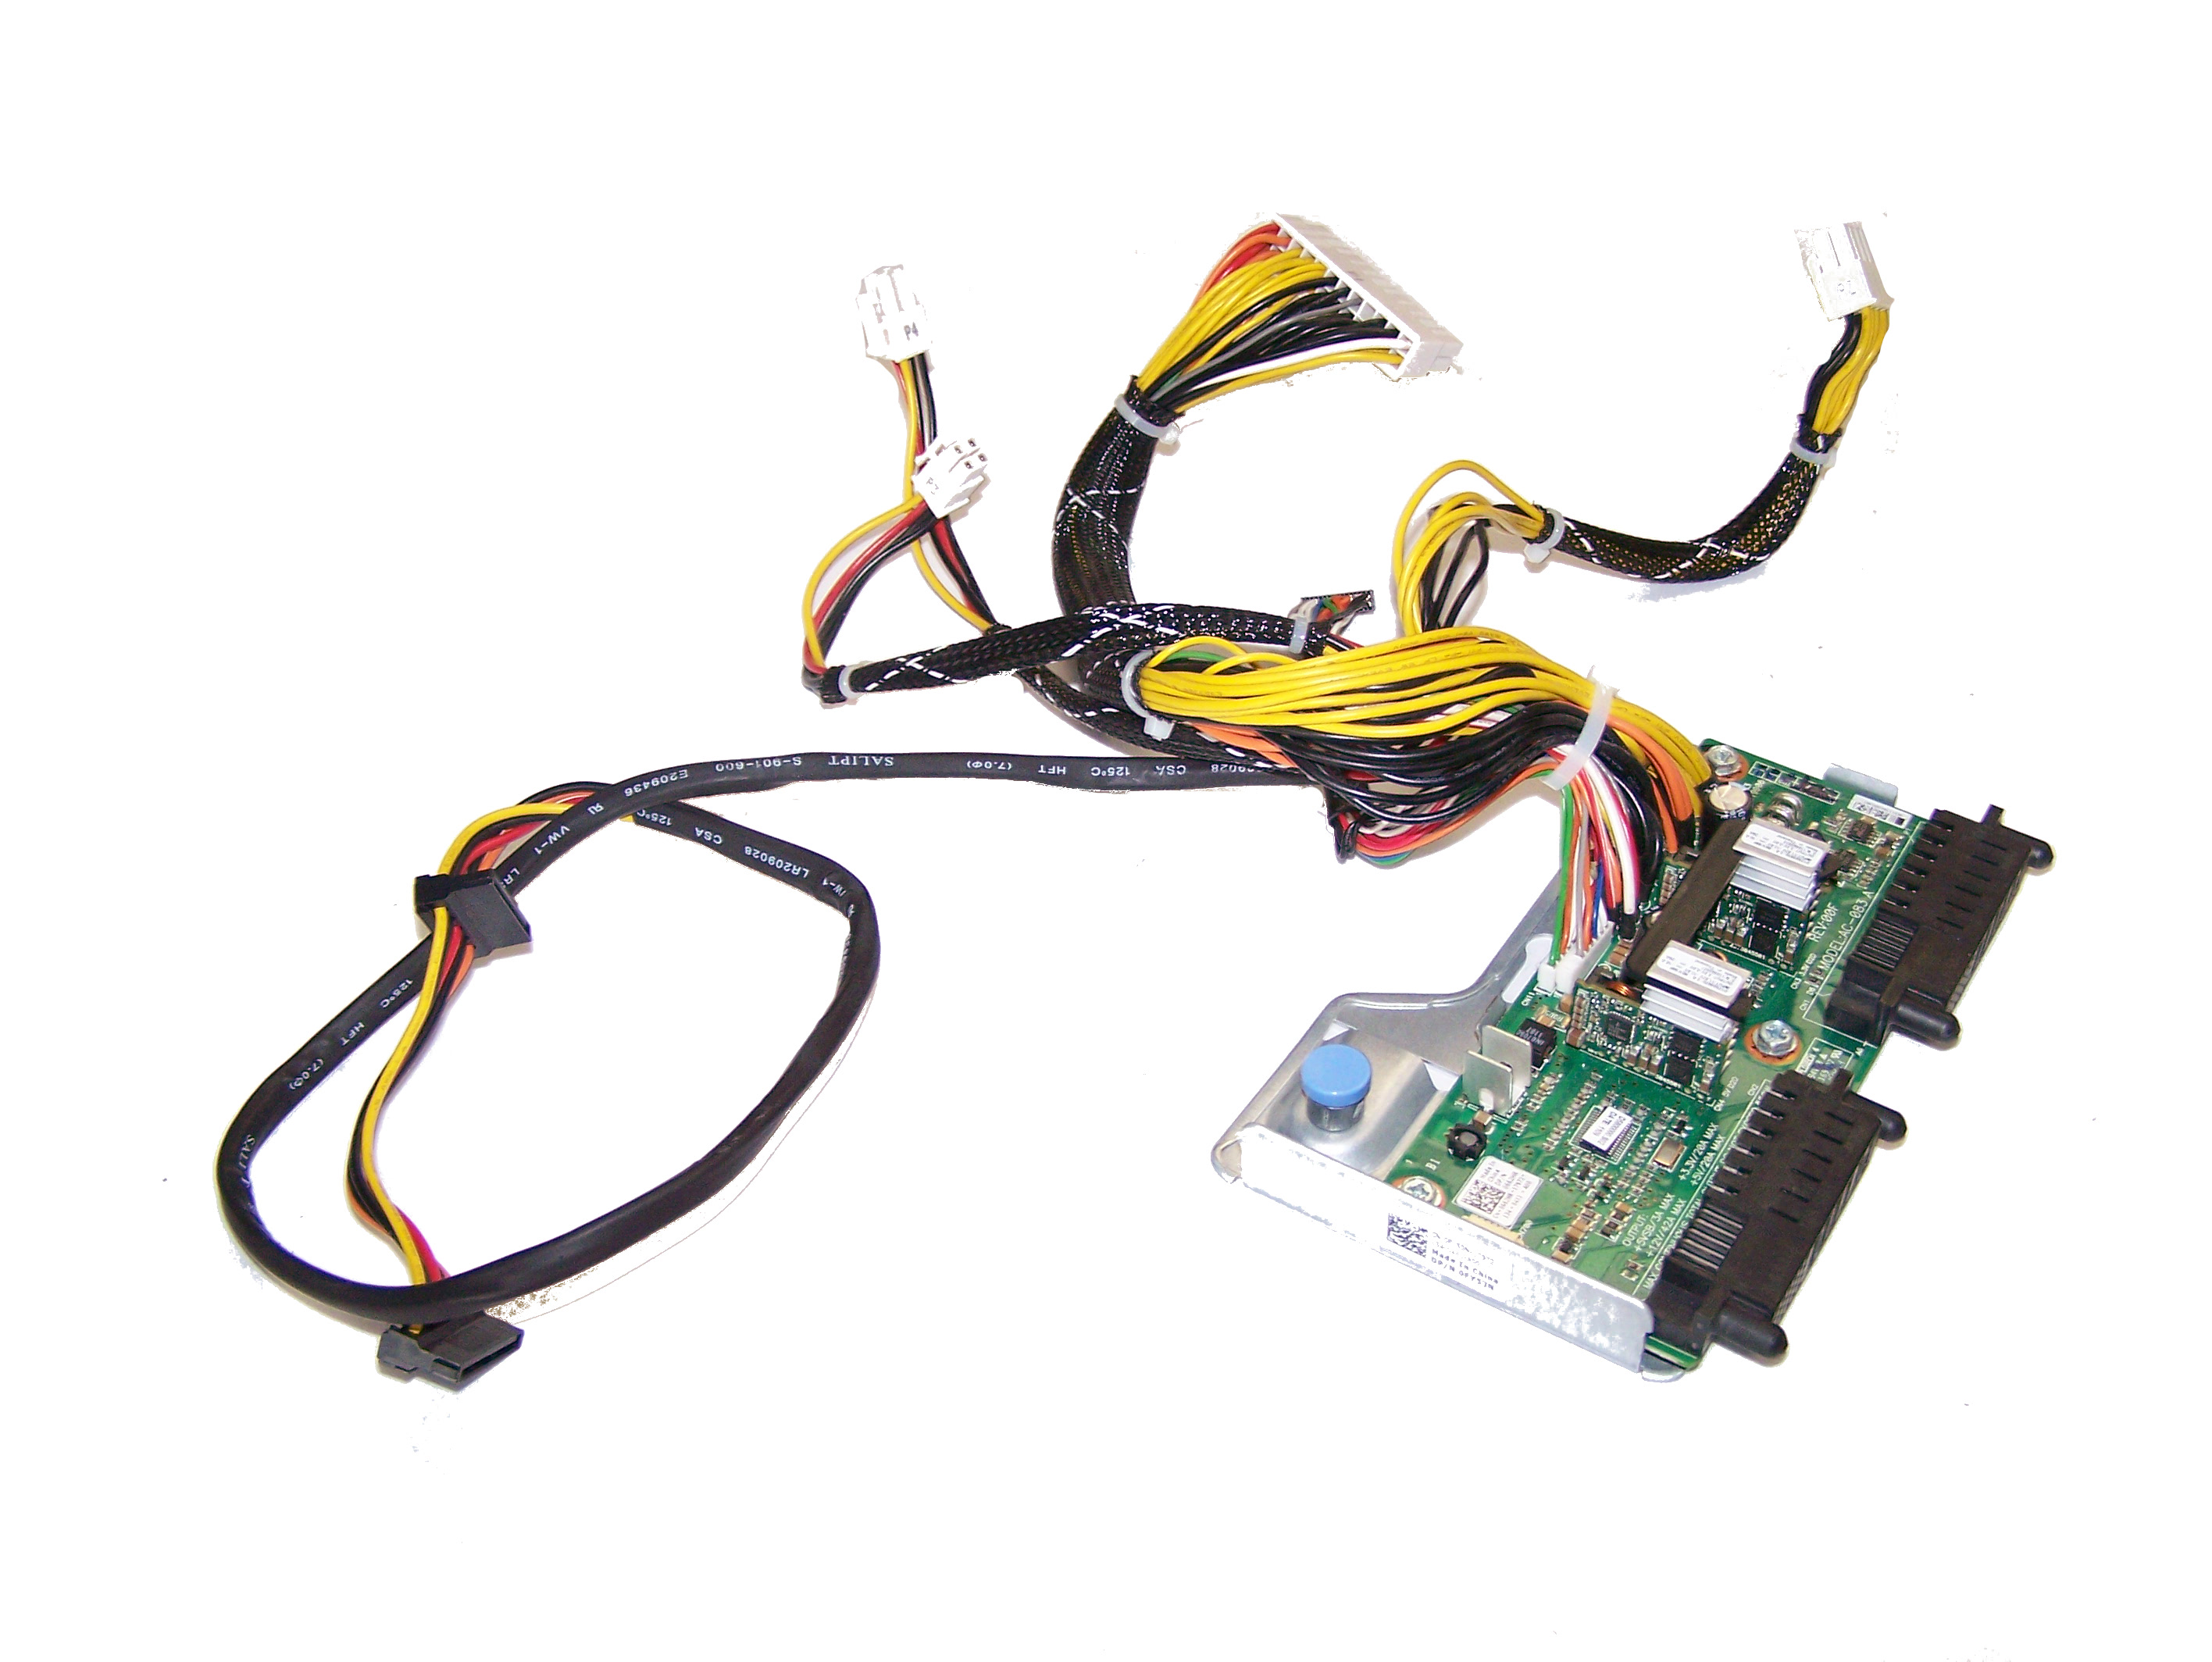 Details about Dell 662HR PowerEdge T410 Power Supply Backplane   0662HR